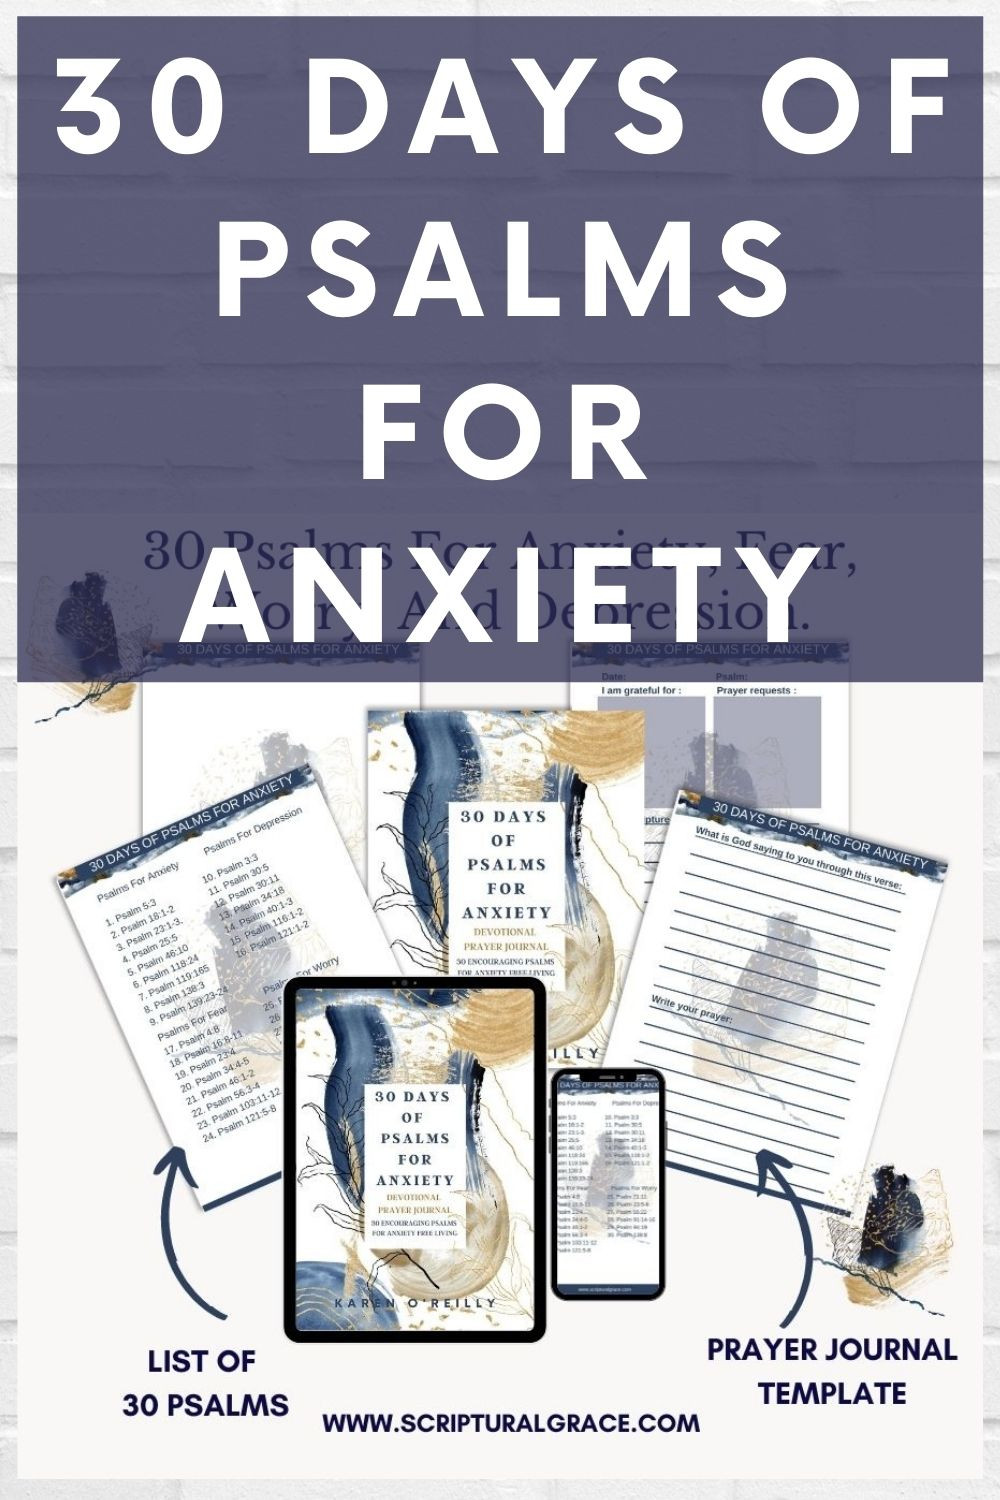 30 DAYS OF PSALMS FOR ANXIETY FREE PRINTABLE BIBLE PLAN AND PRAYER JOURNAL